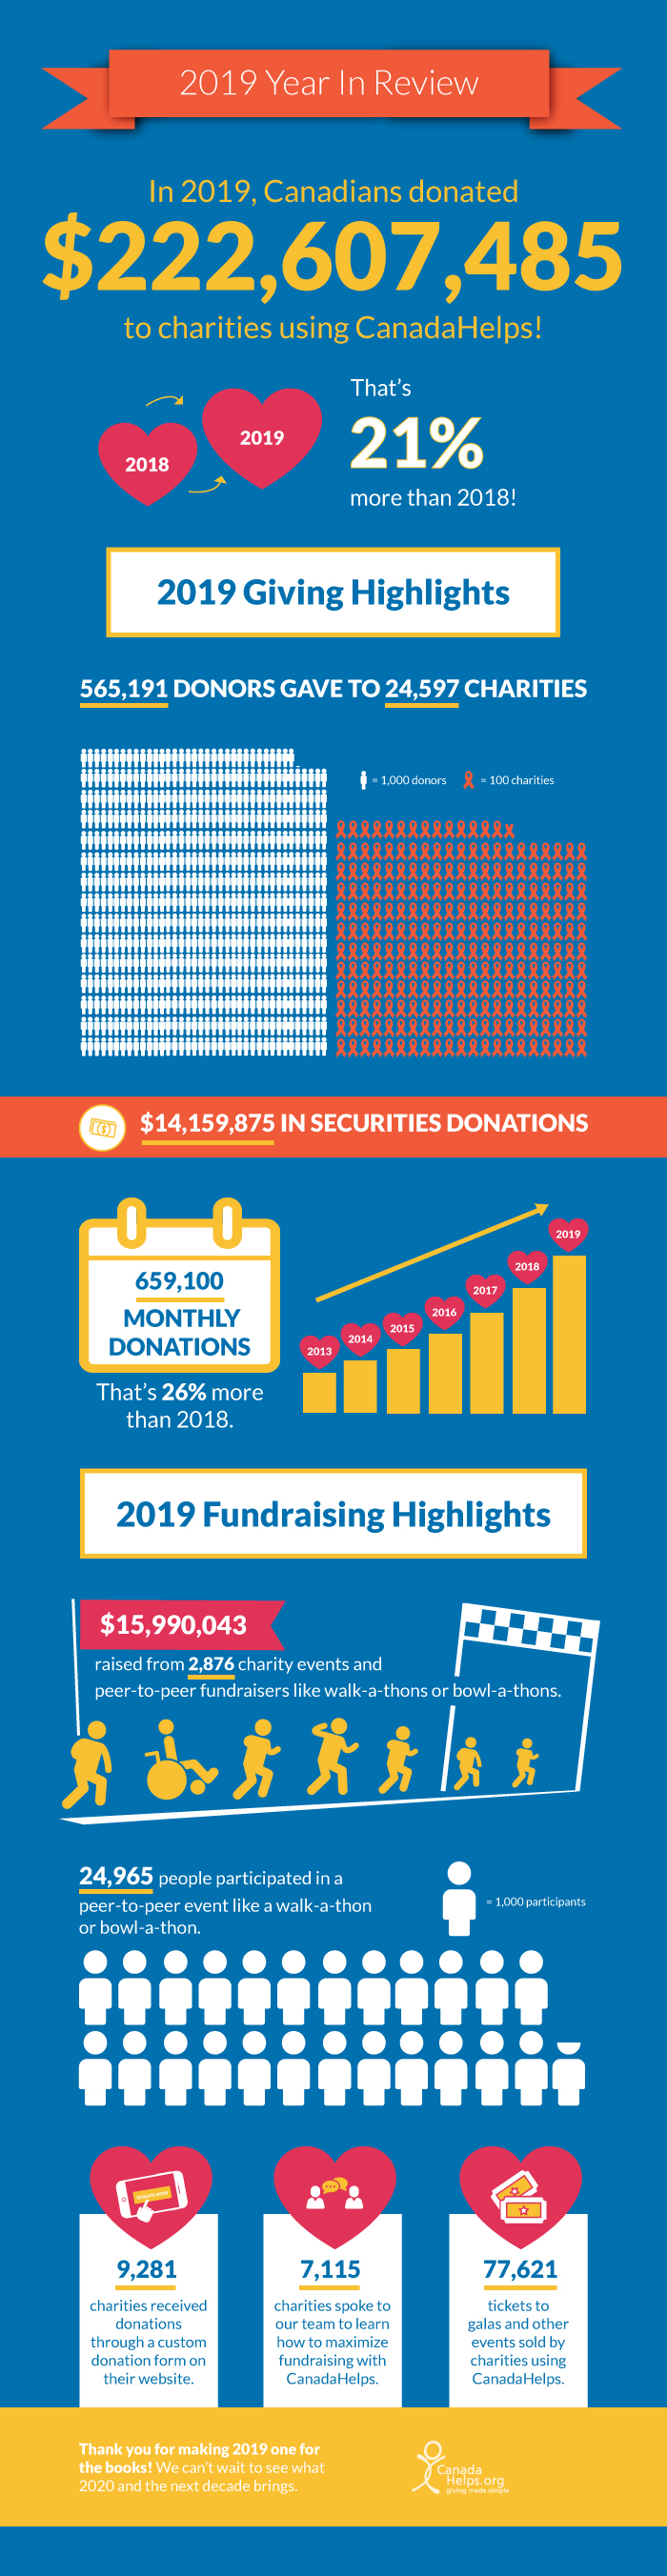 2019 CanadaHelps Fundraising Highlights